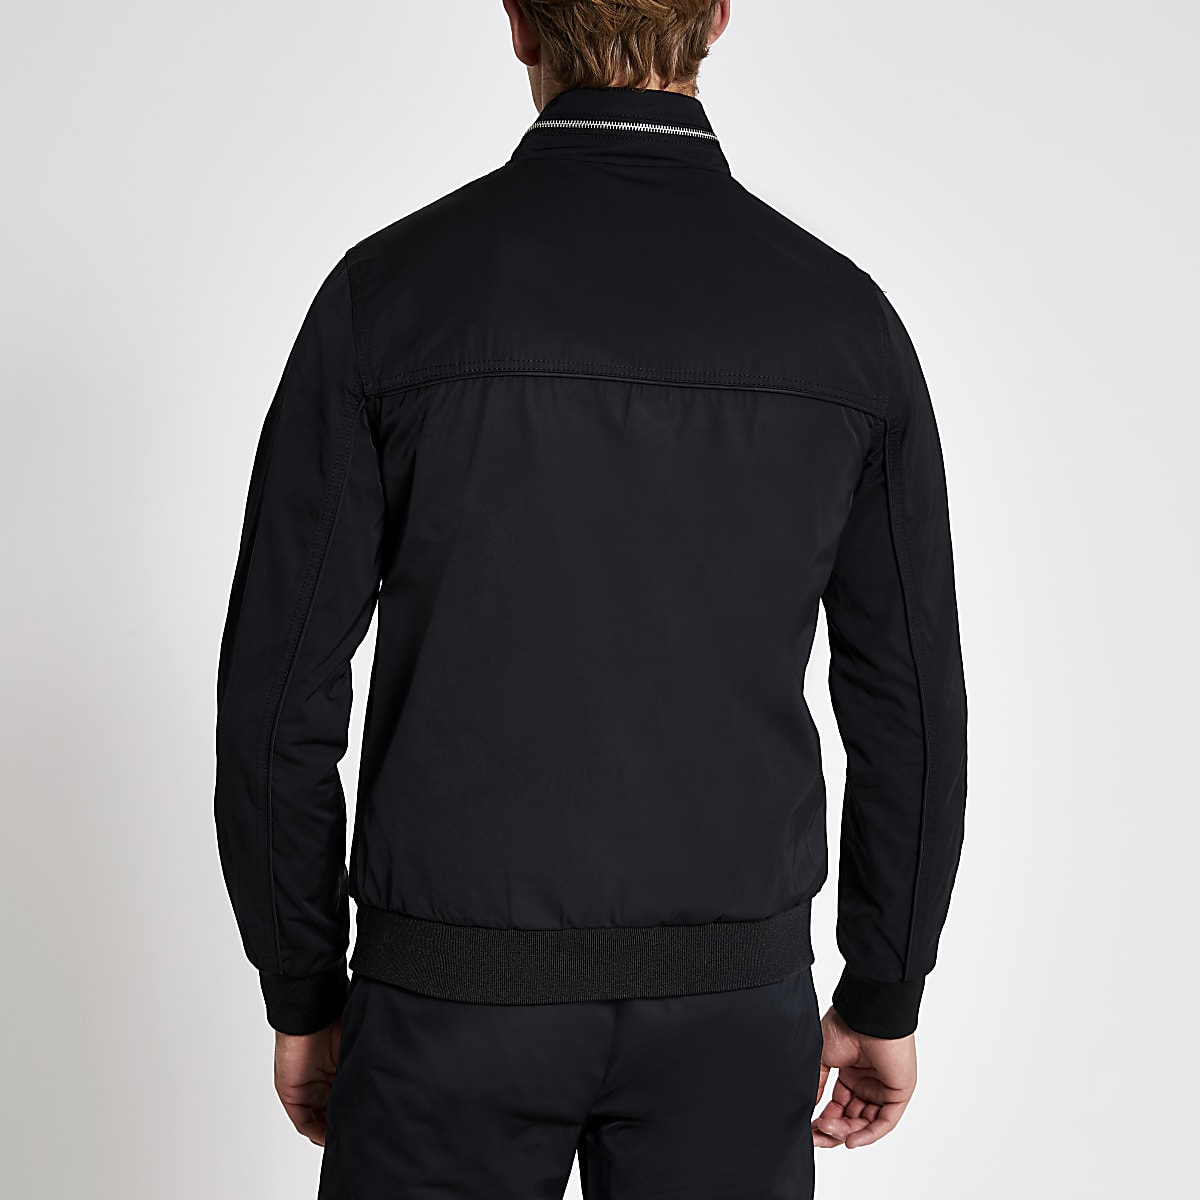 875050d1c Black zip front racer jacket